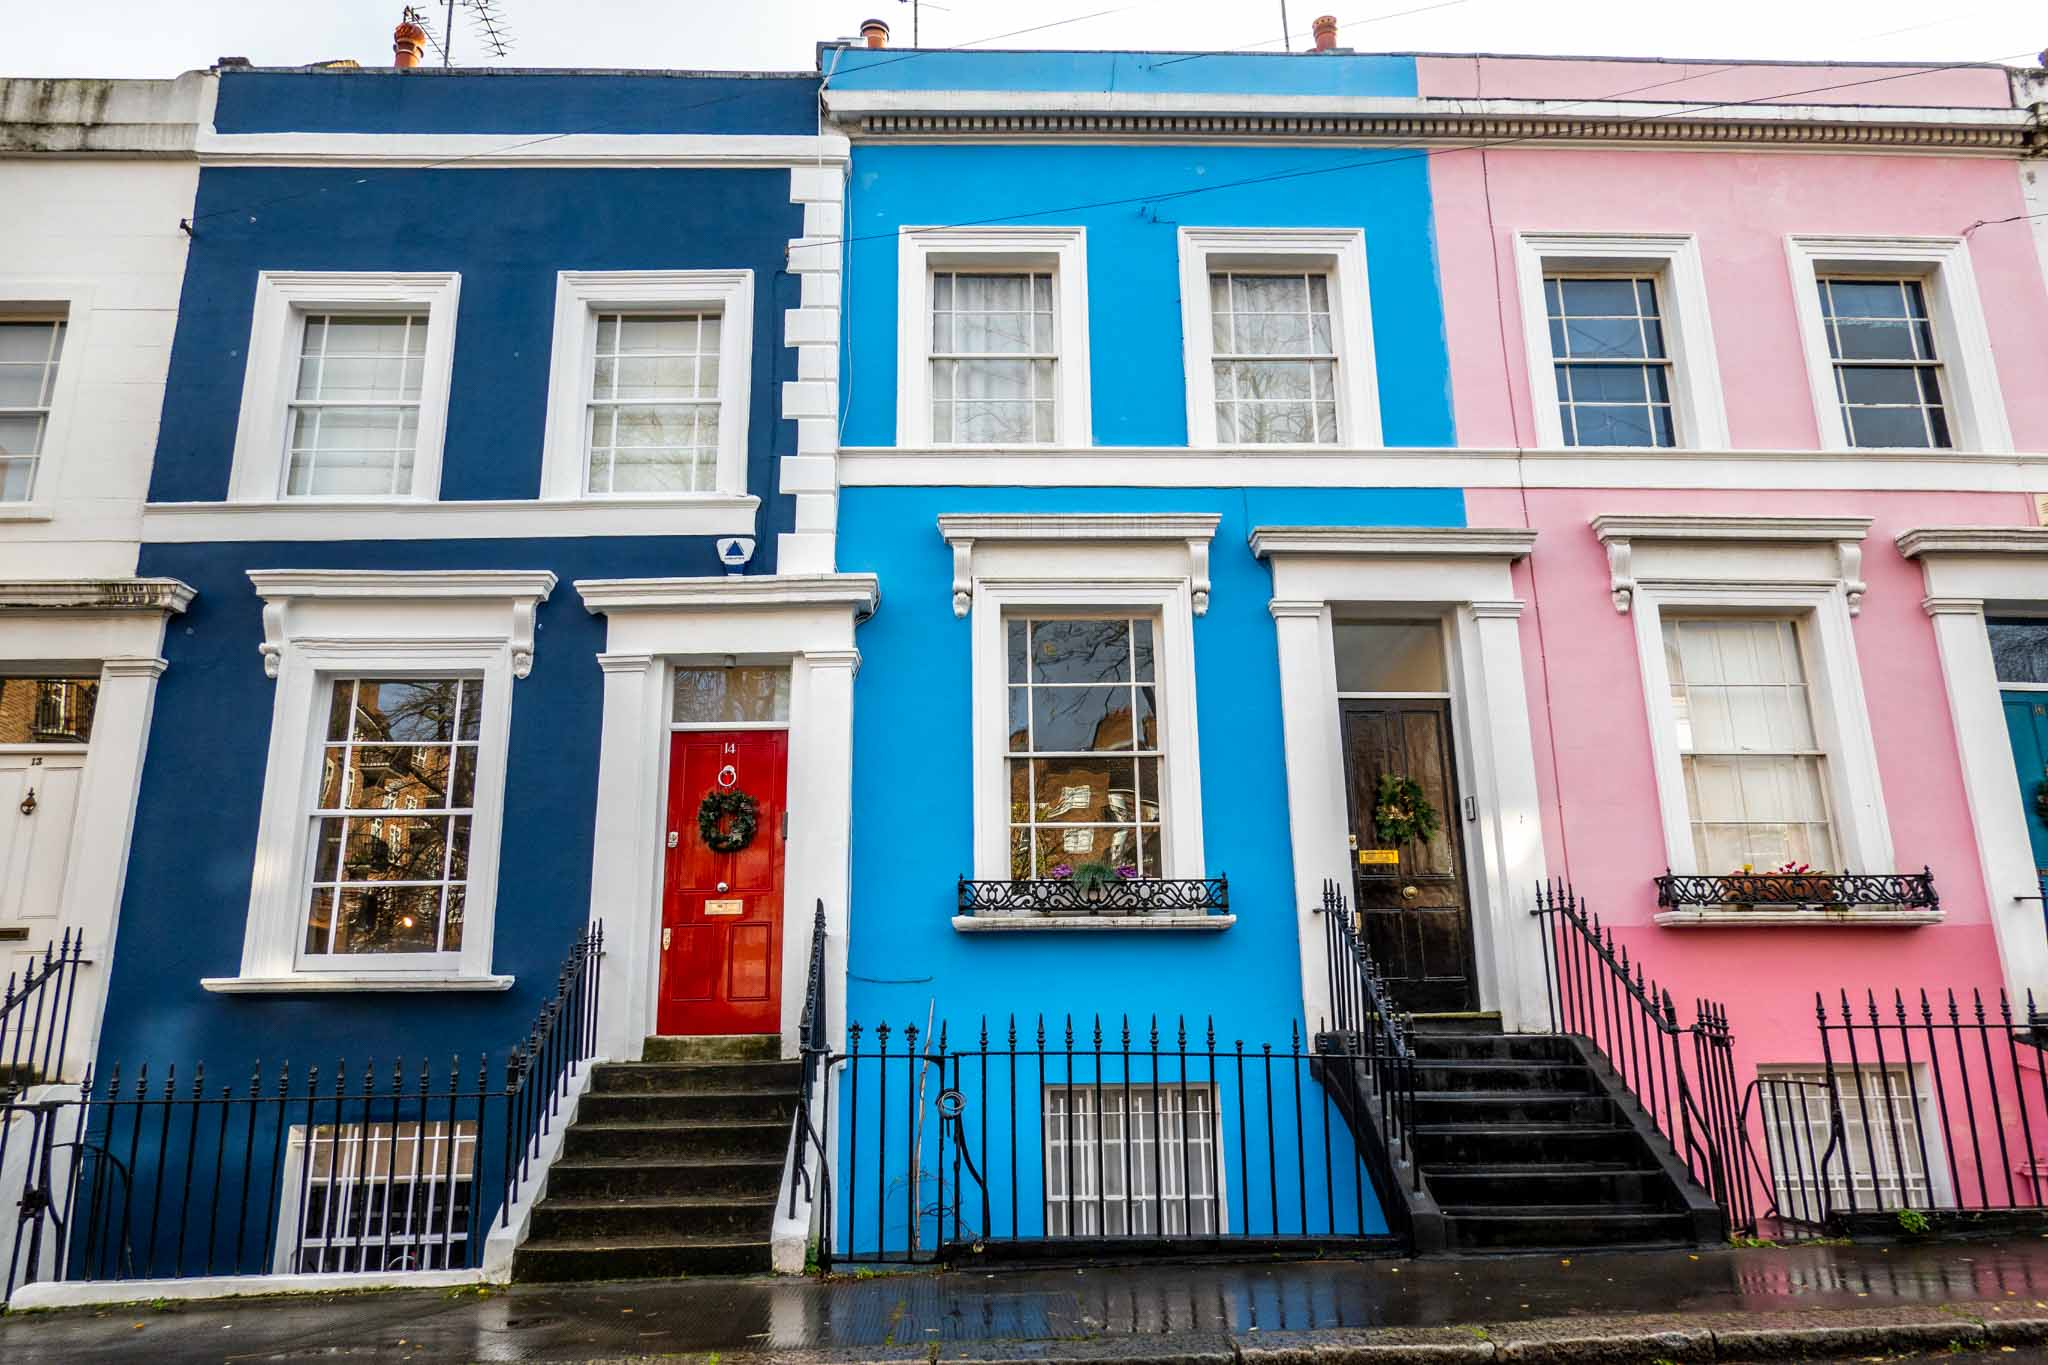 Blue and pink terrace homes in Notting Hill, London